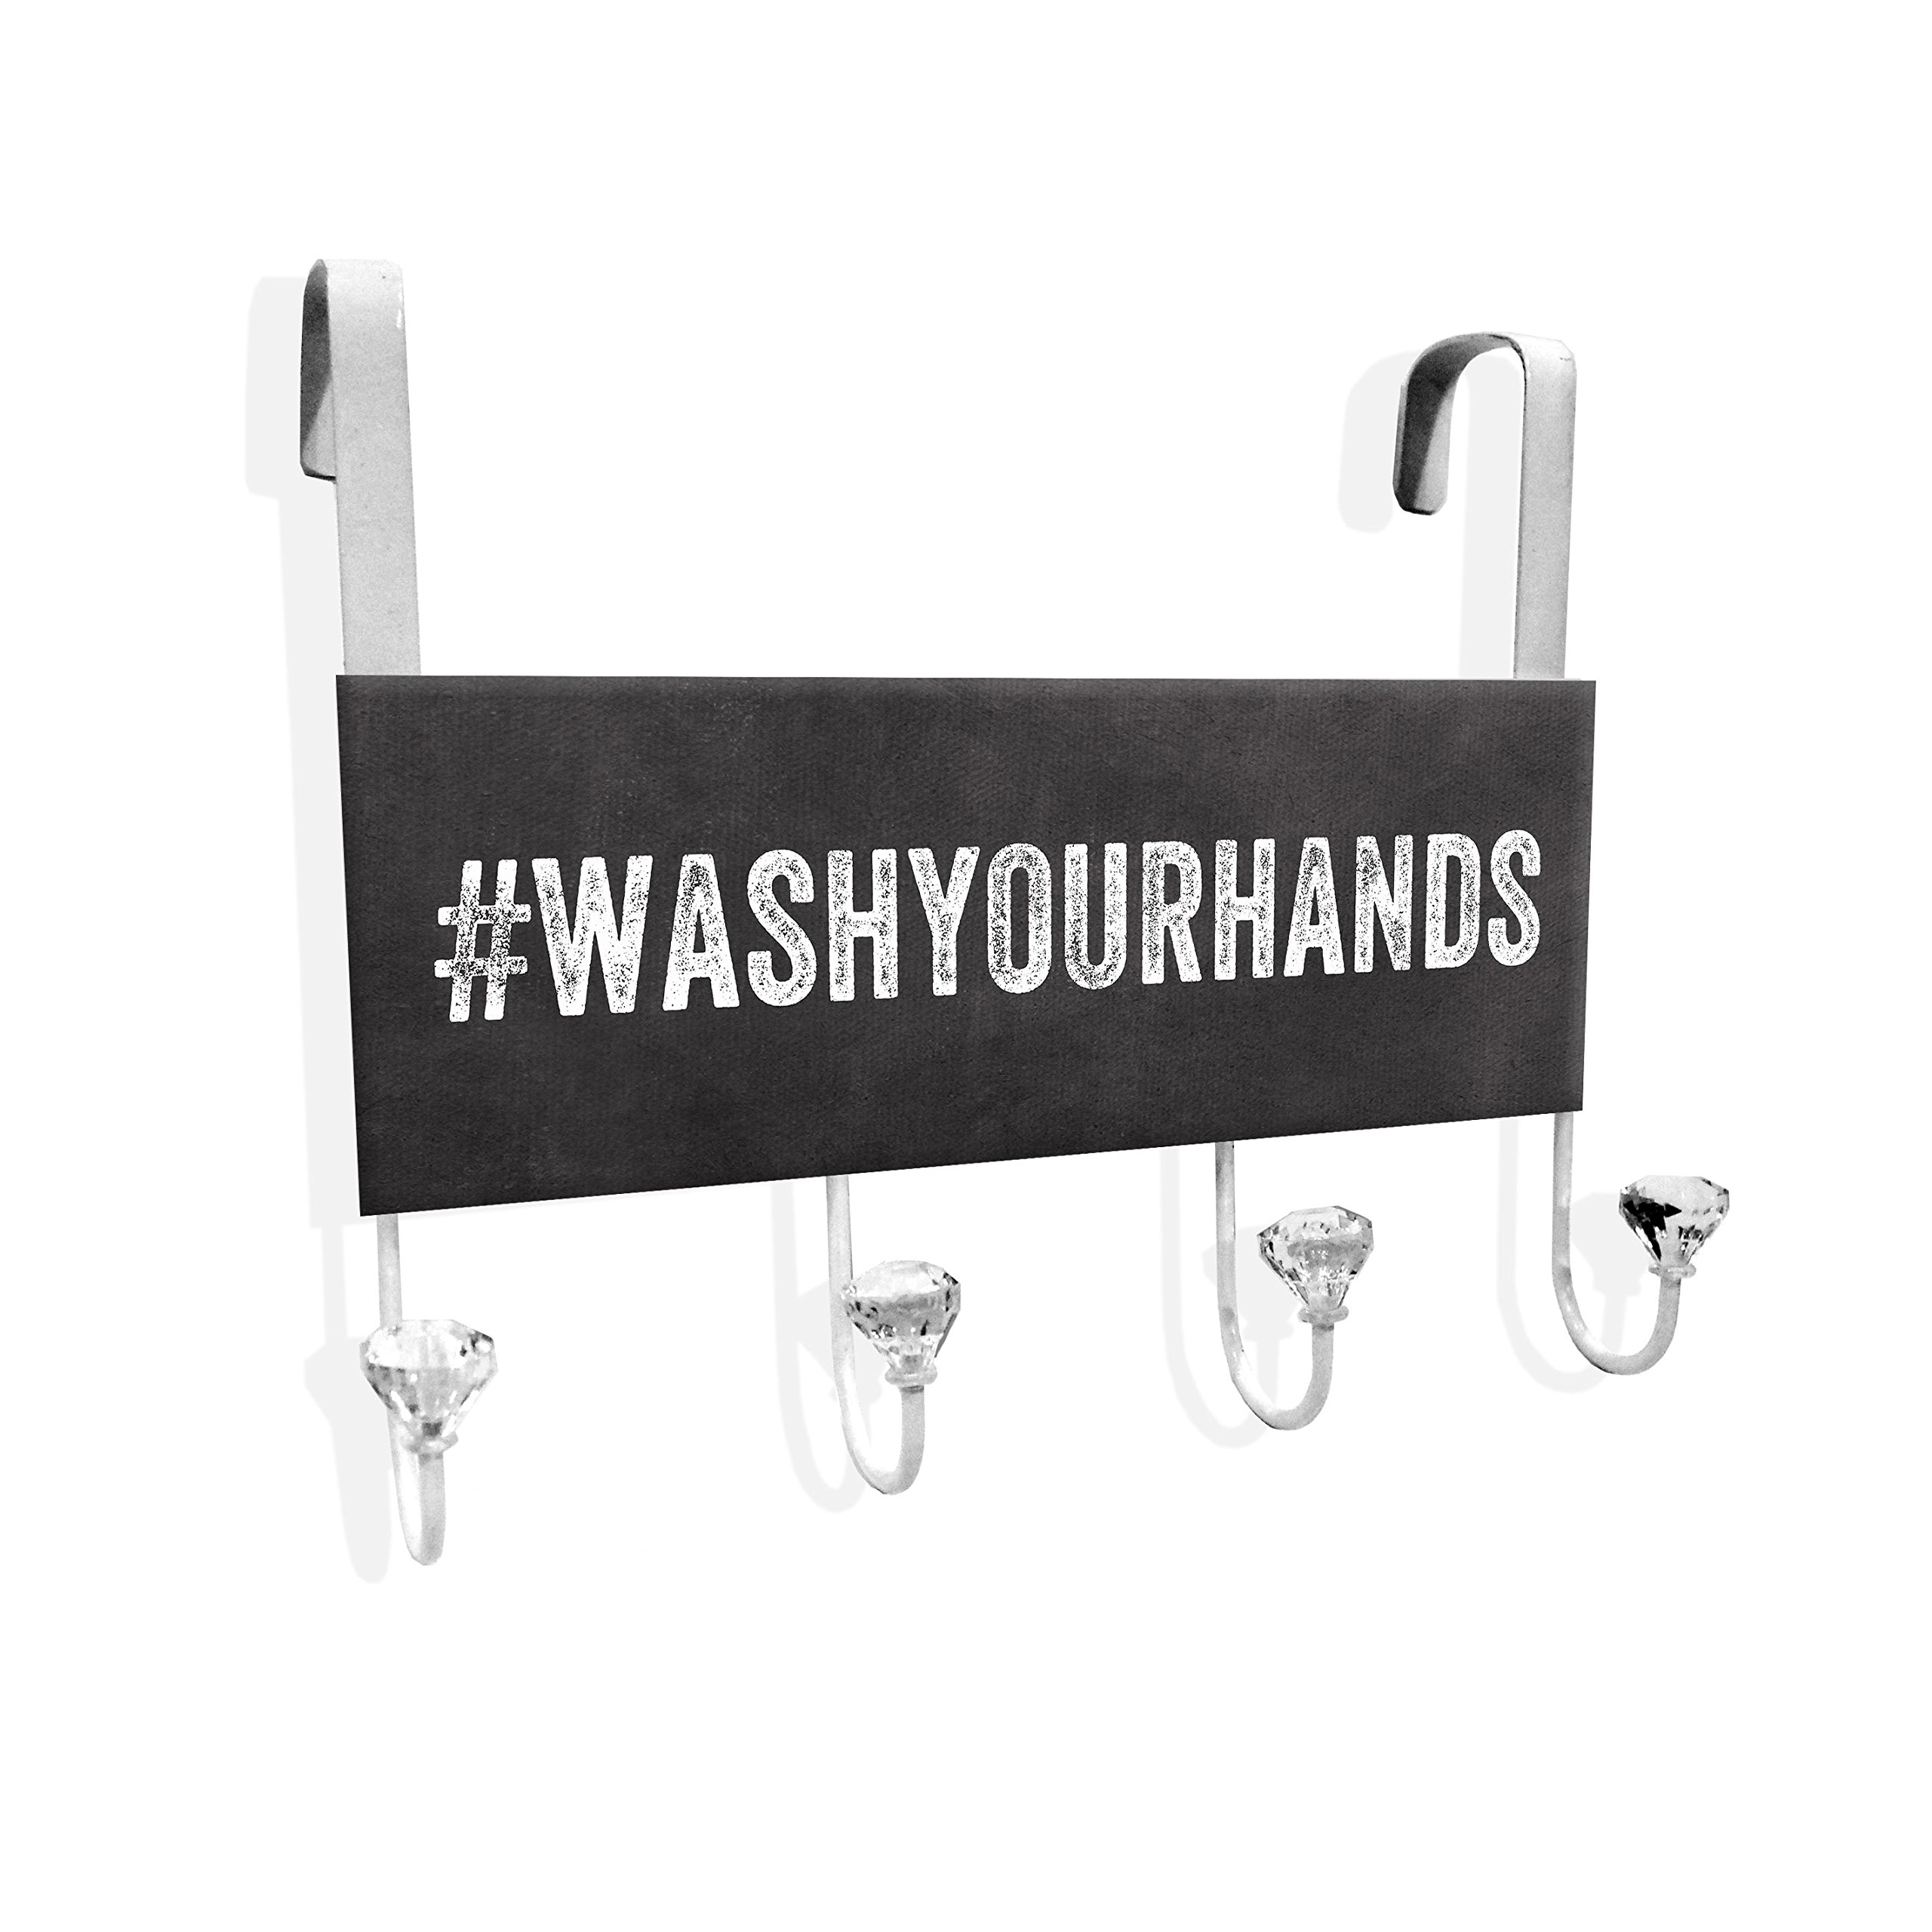 Stupell Home Décor Wash Your Hands Over The Door Hanger, 12 x 10.5 x 2, Proudly Made in USA